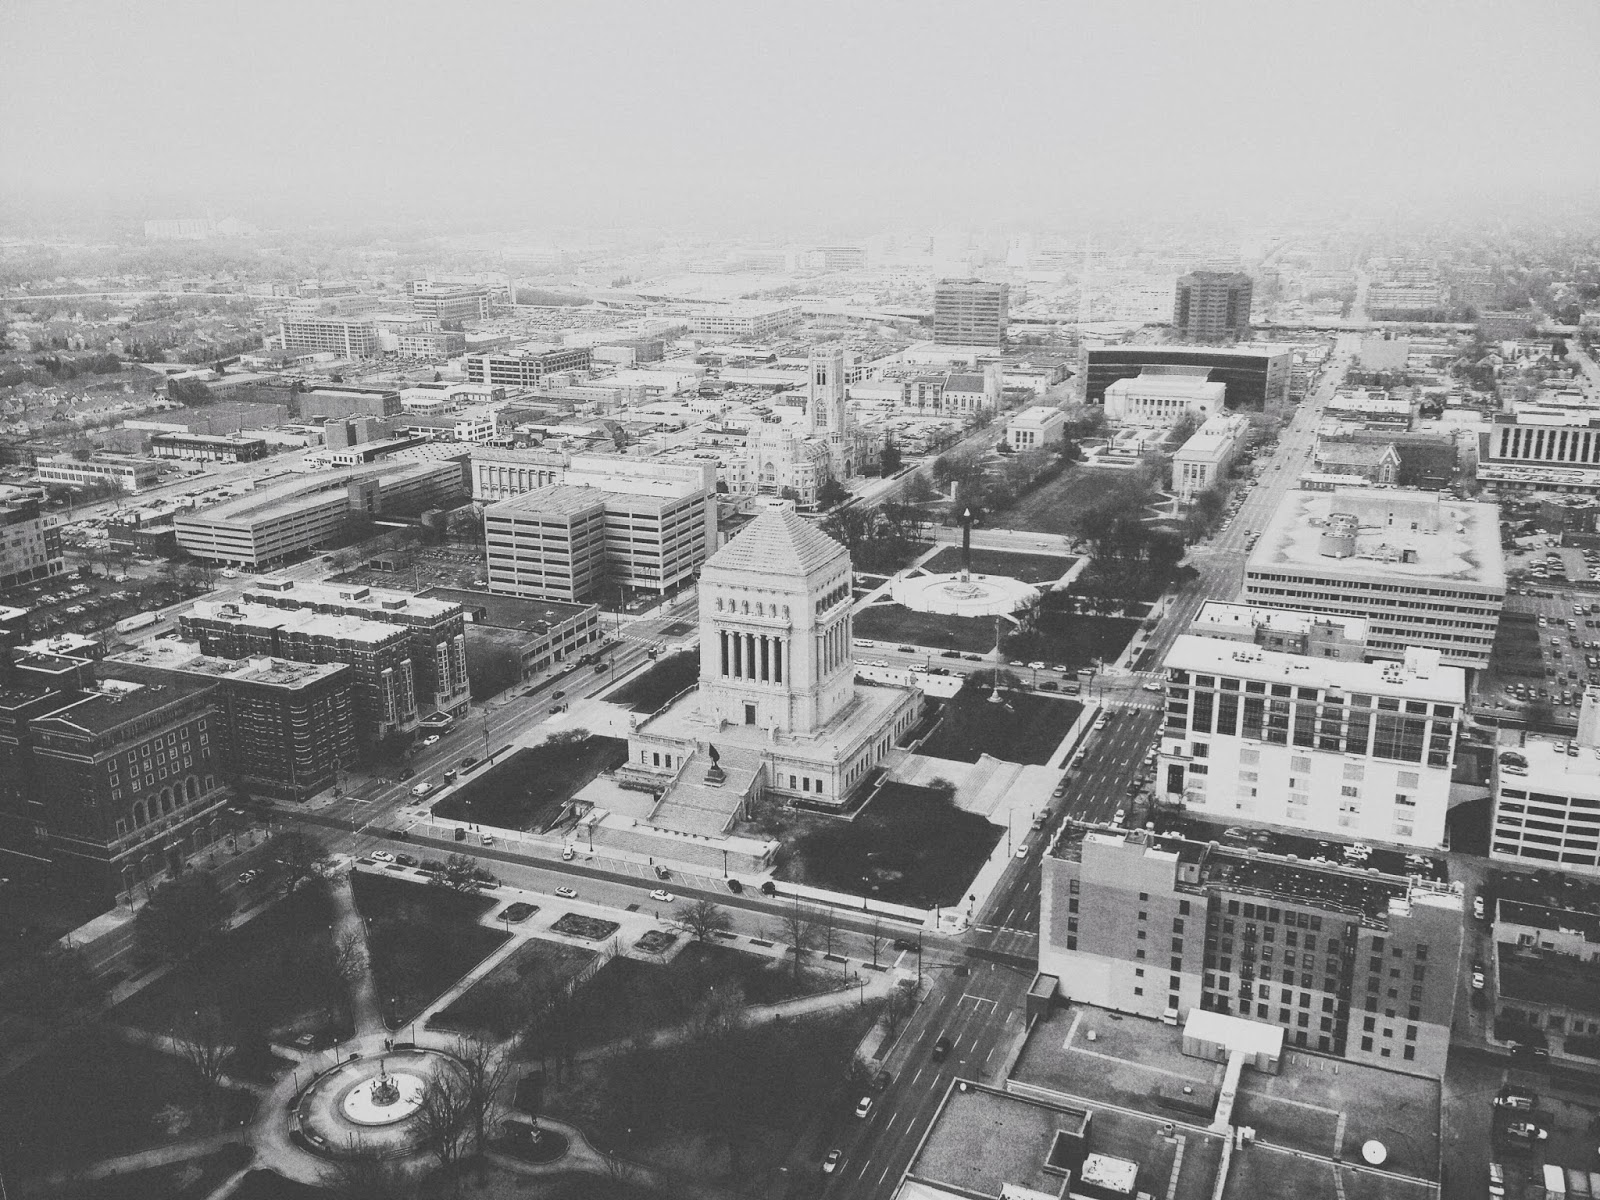 iPhone5-Indianapolis-from-above-wmiii.co-1